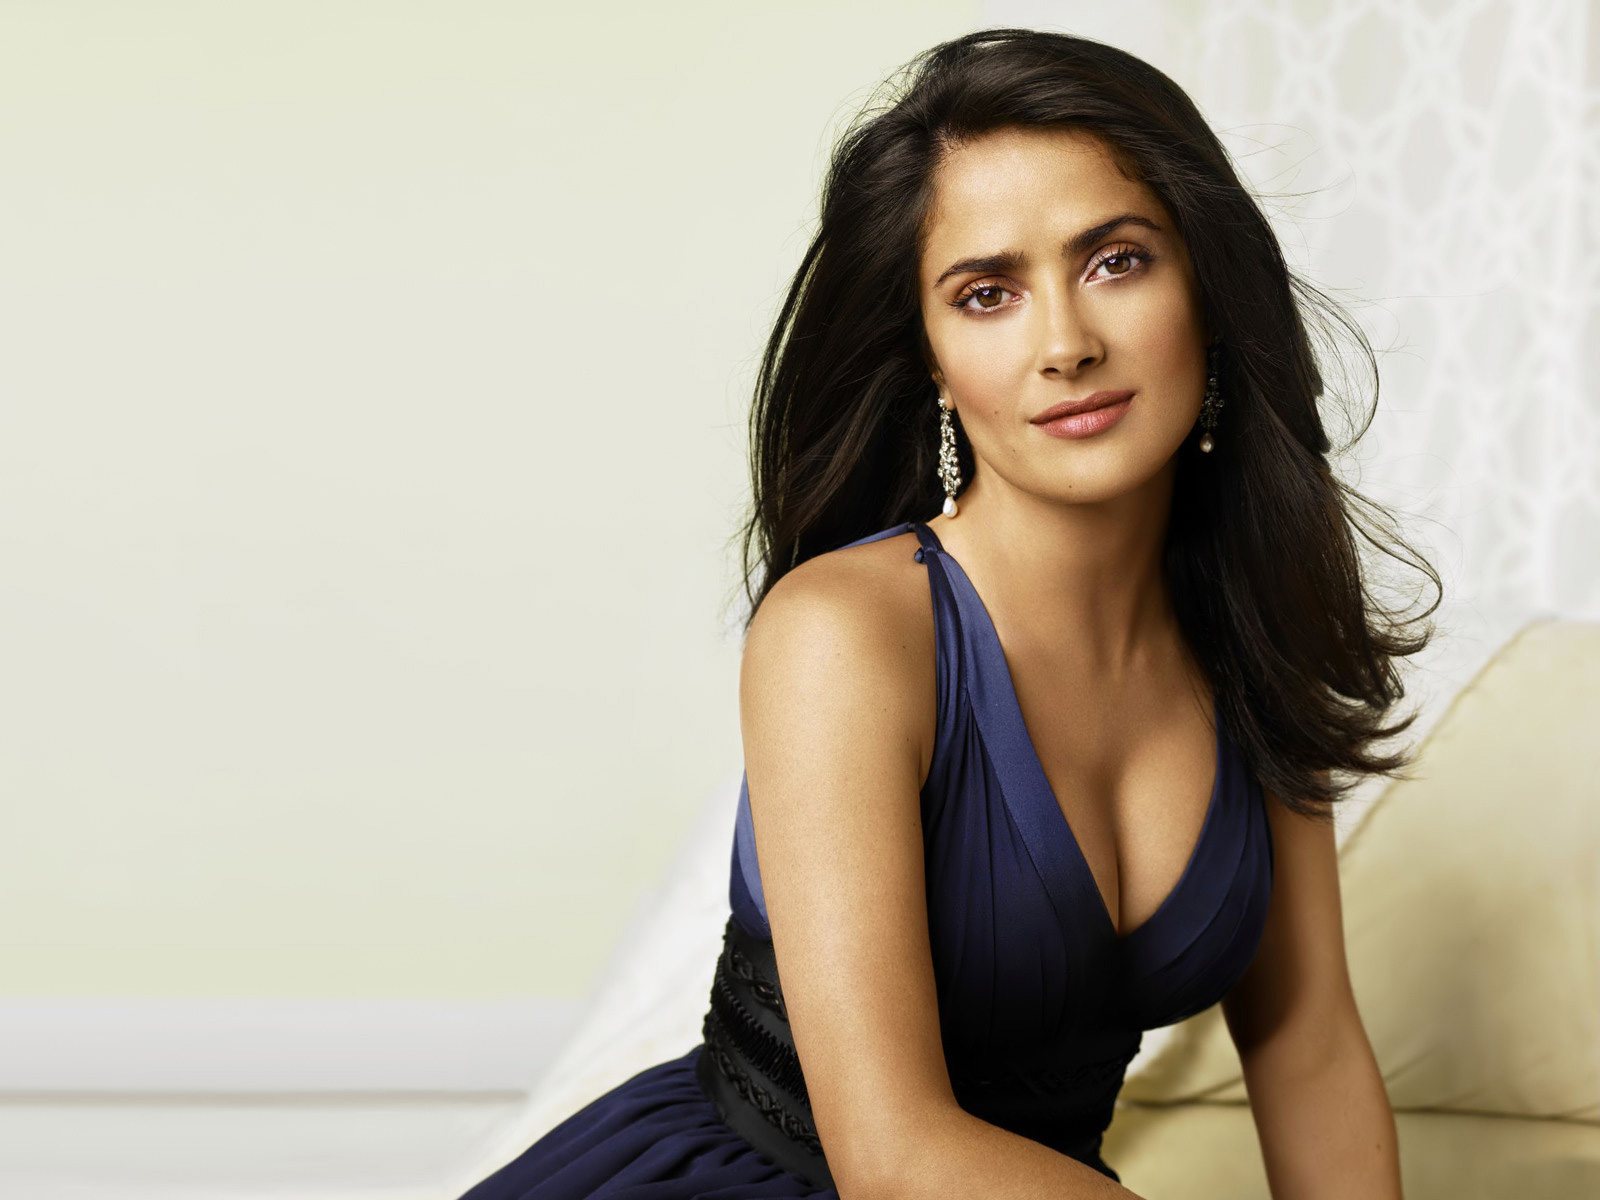 salma hayek hollywood actress latest hot hd wallpaper 2013